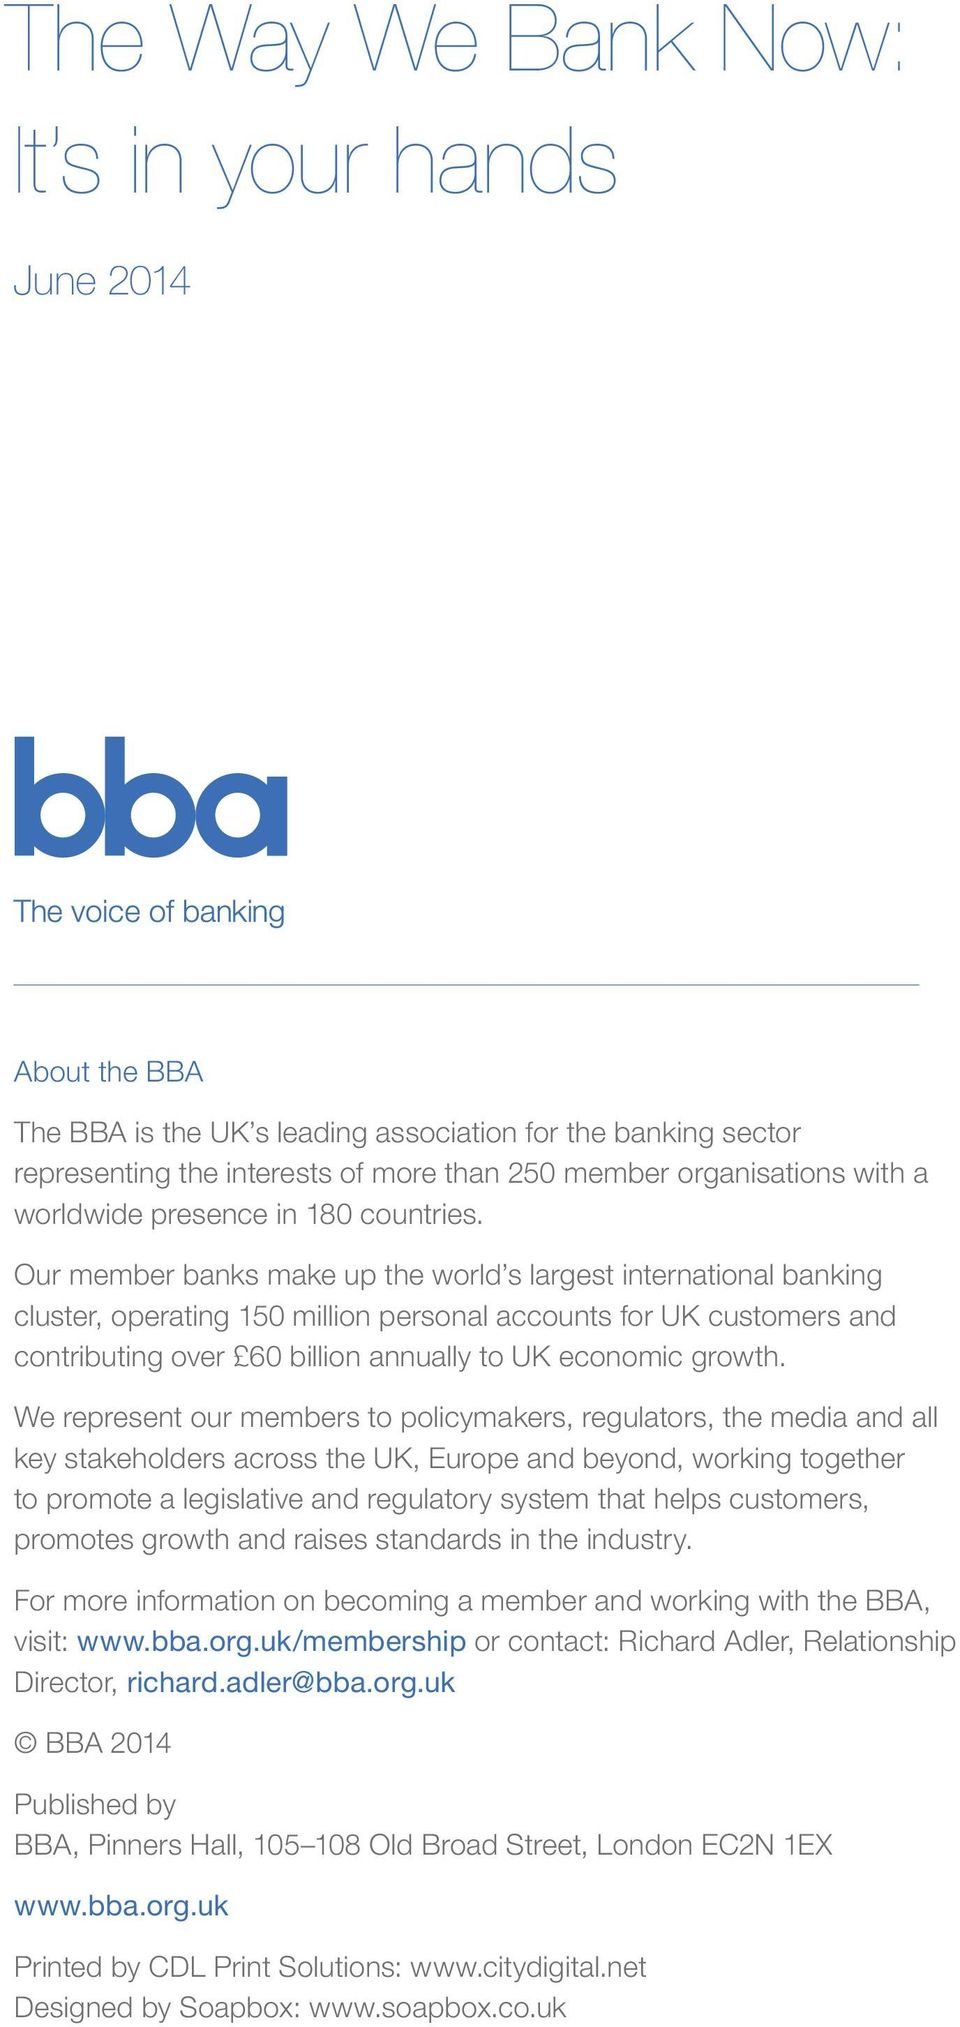 Our member banks make up the world s largest international banking cluster, operating 150 million personal accounts for UK customers and contributing over 60 billion annually to UK economic growth.